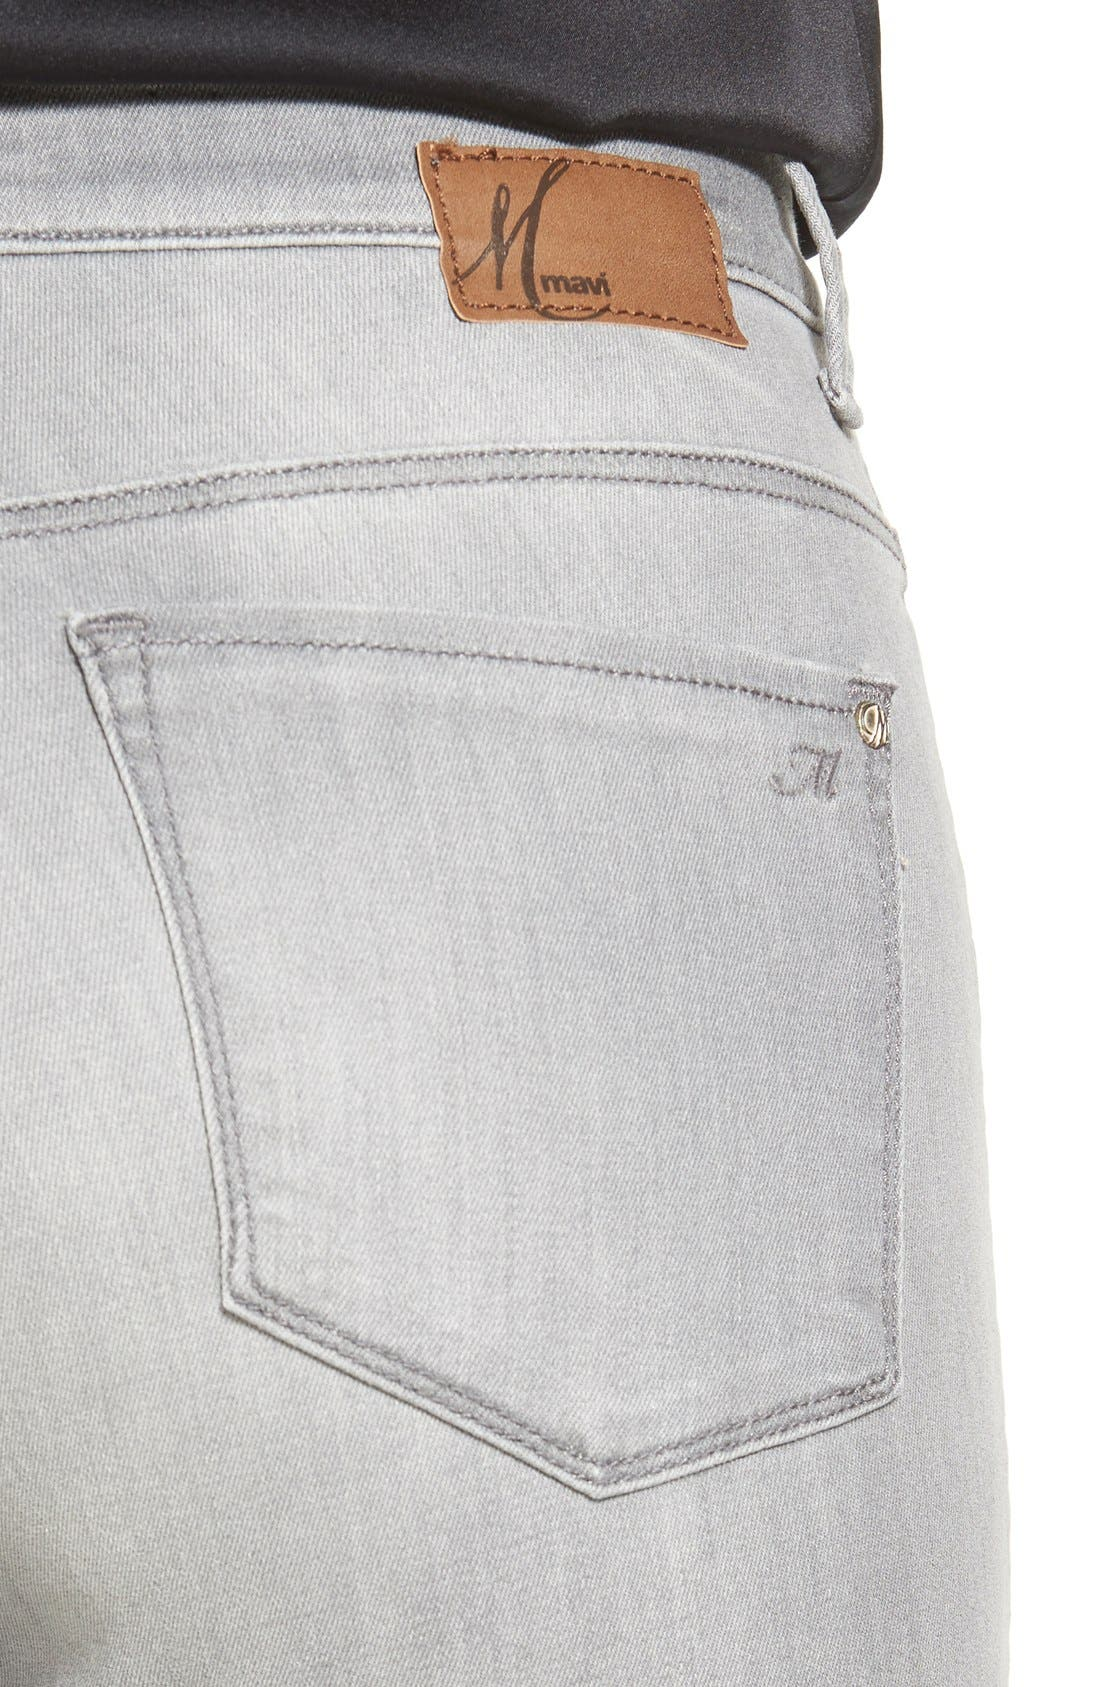 Alternate Image 4  - Mavi Jeans 'Alissa' Stretch Skinny Jeans (Light Grey Tribeca) (Petite)